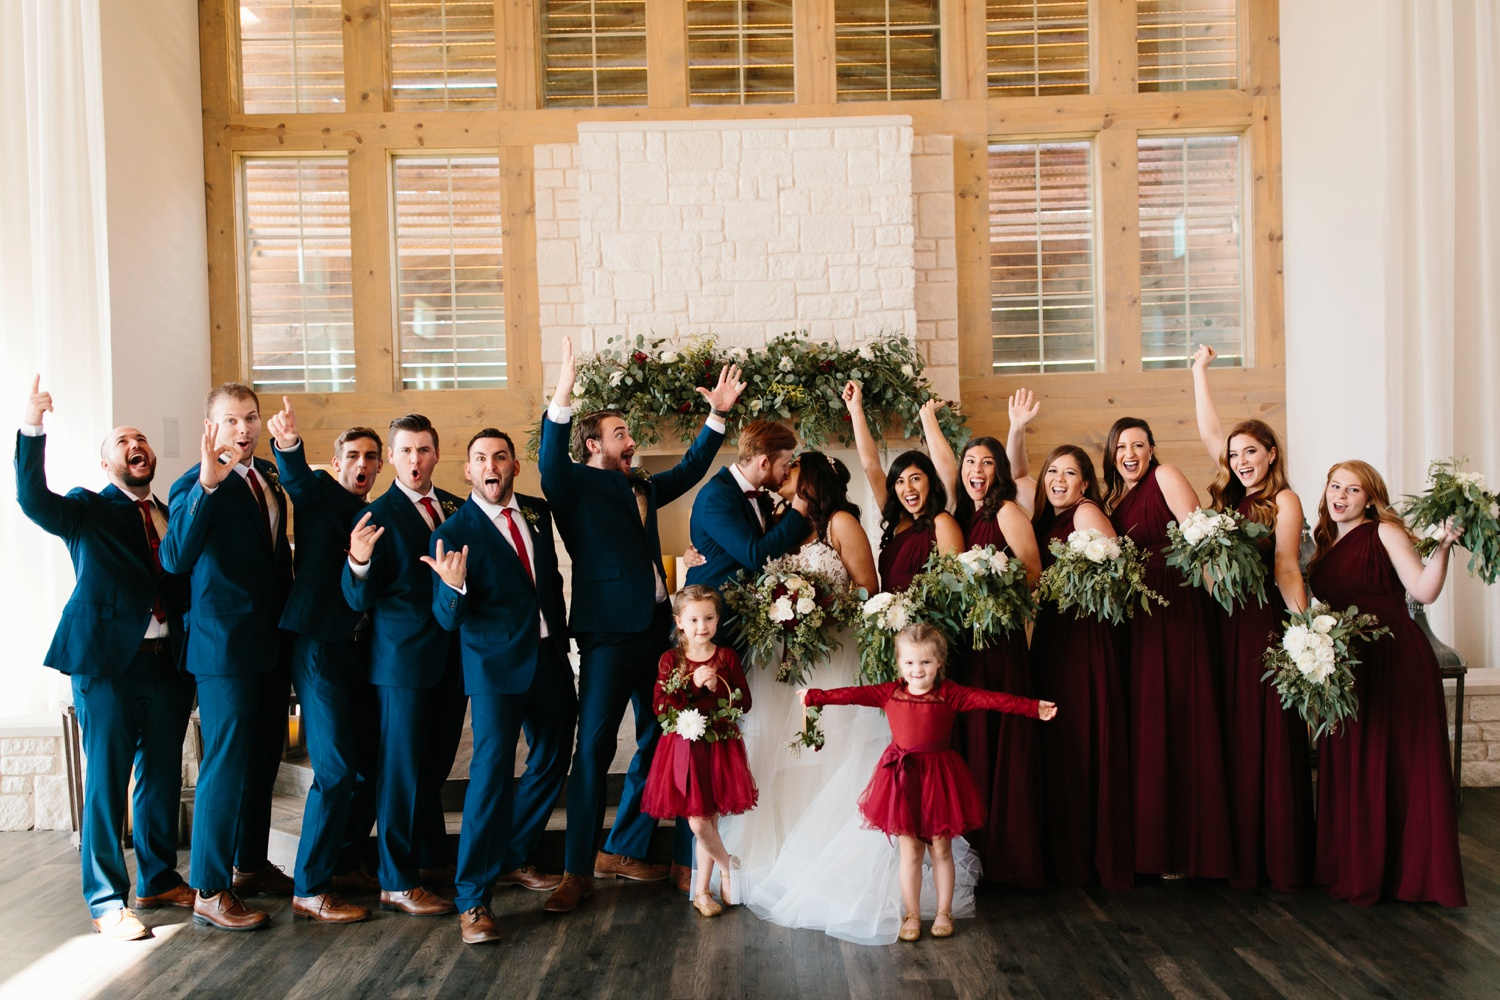 Grant + Lysette | a vibrant, deep burgundy and navy, and mixed metals wedding at Hidden Pines Chapel by North Texas Wedding Photographer Rachel Meagan Photography 119